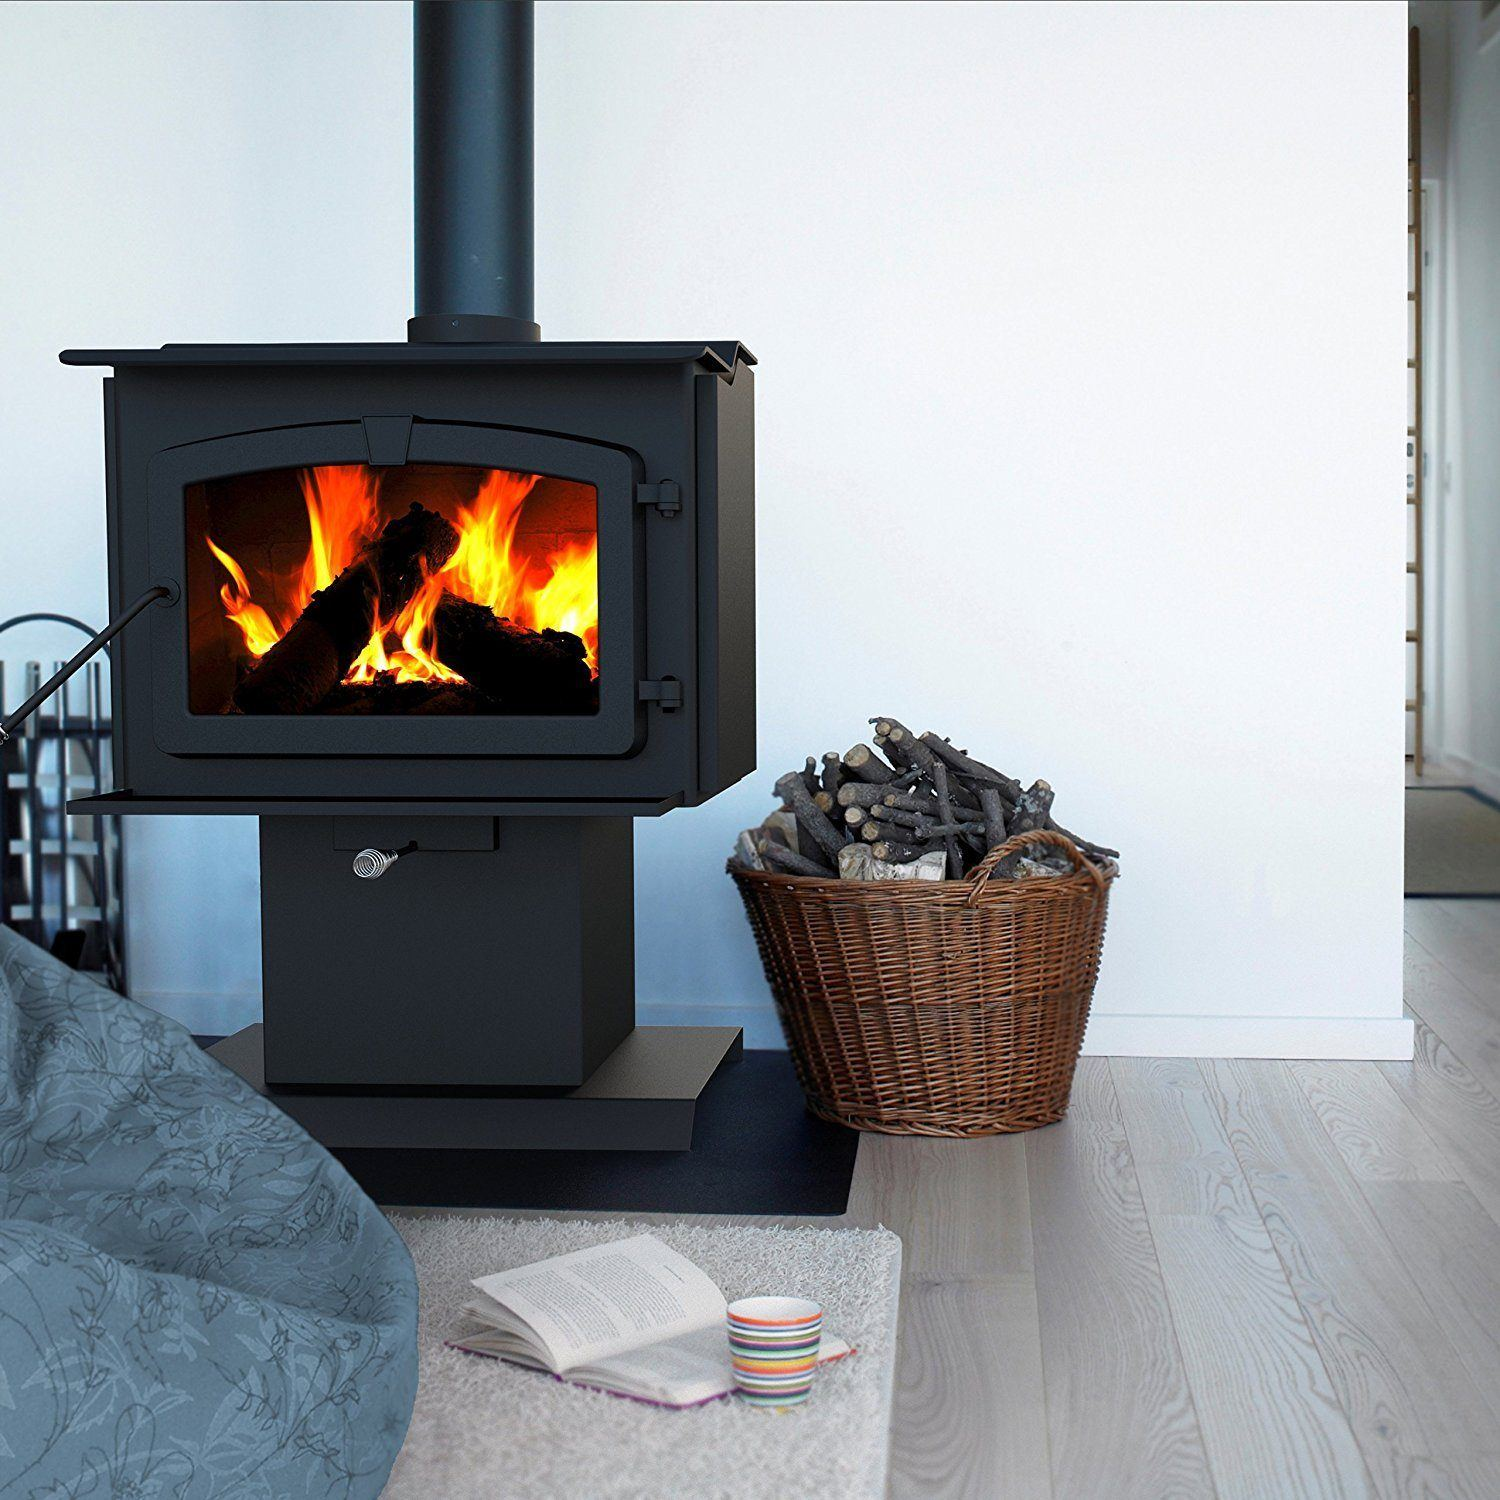 Best Small Wood Stove | WB Designs